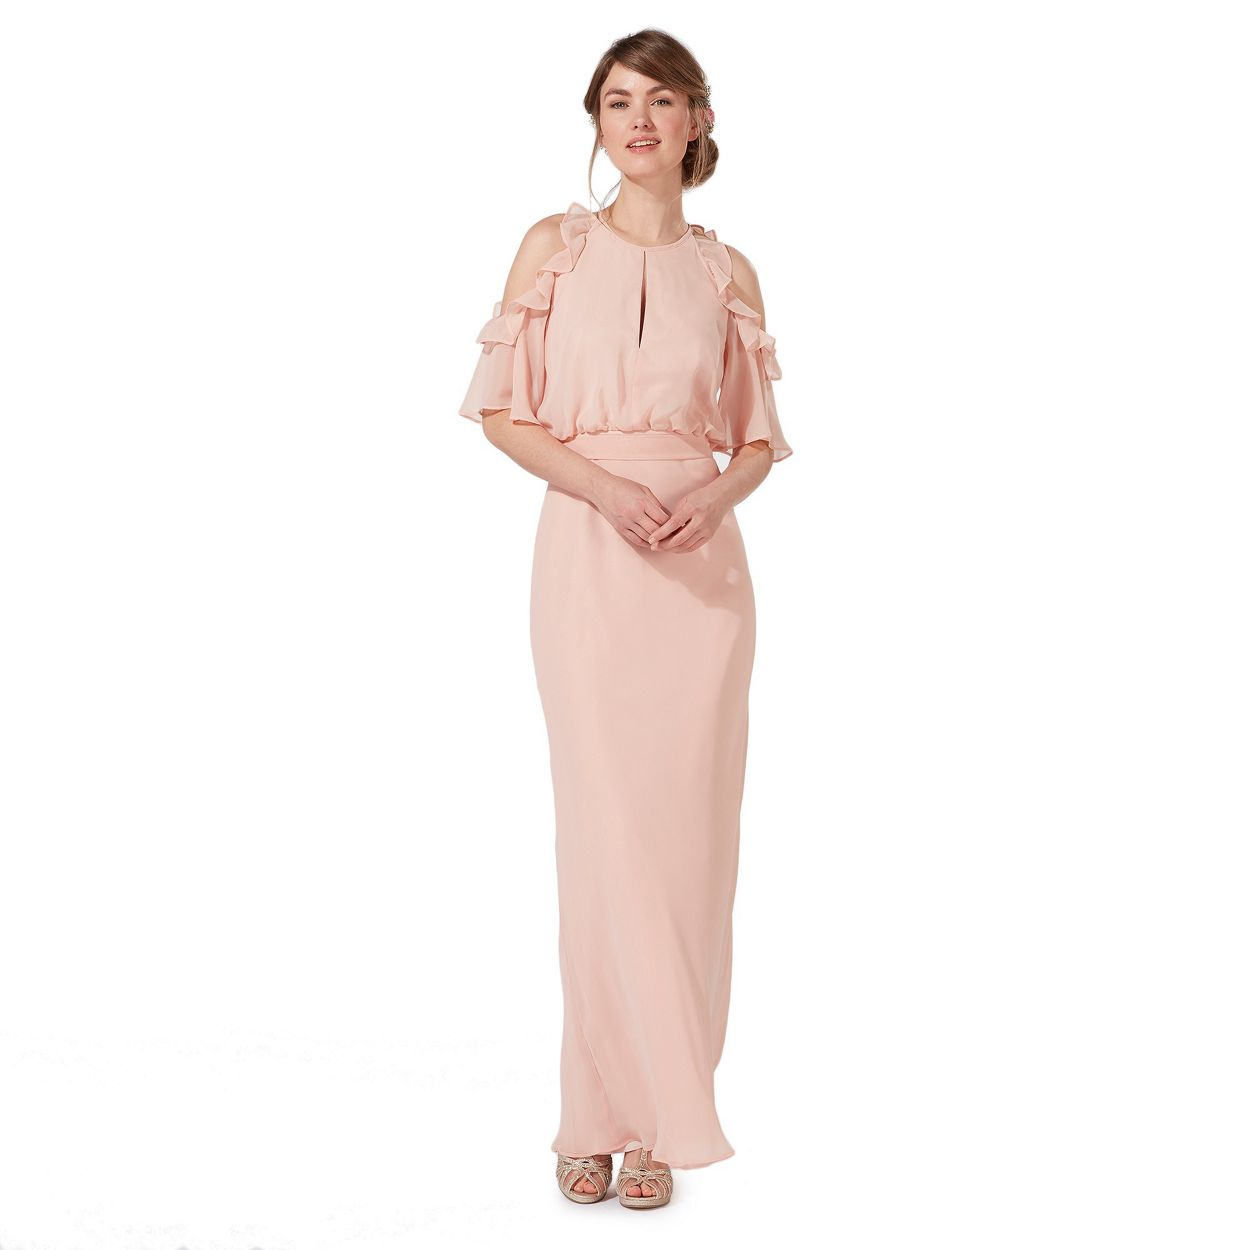 Evening Dress Hire Shops In London 119